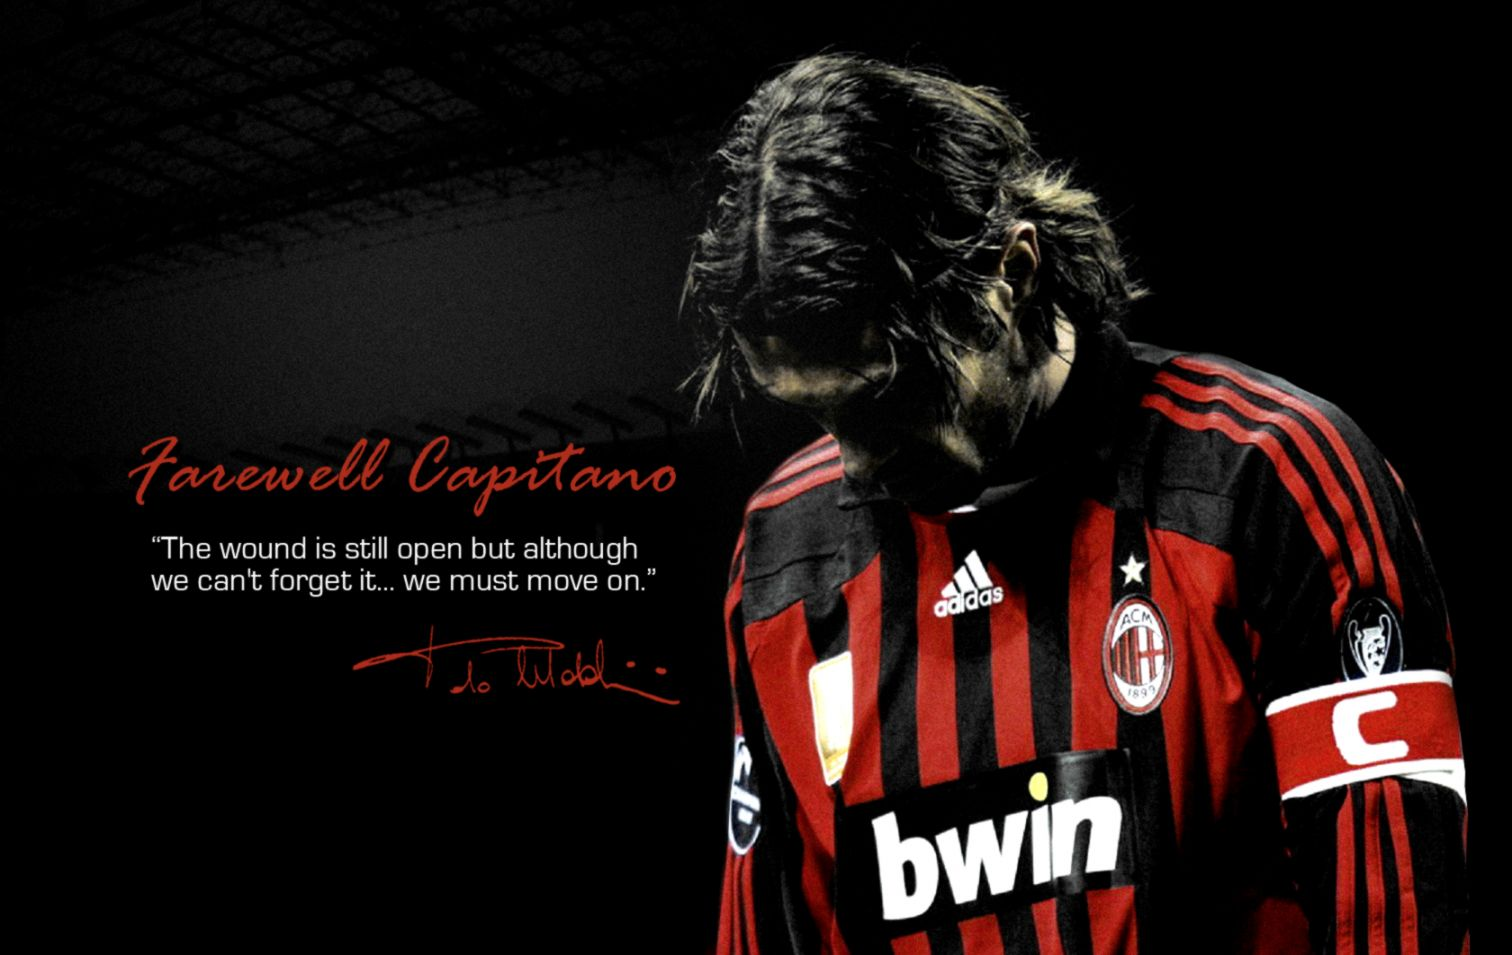 Maldini Ac Milan Legend Players Wallpaper Hd Image Wallpaper 1512x955